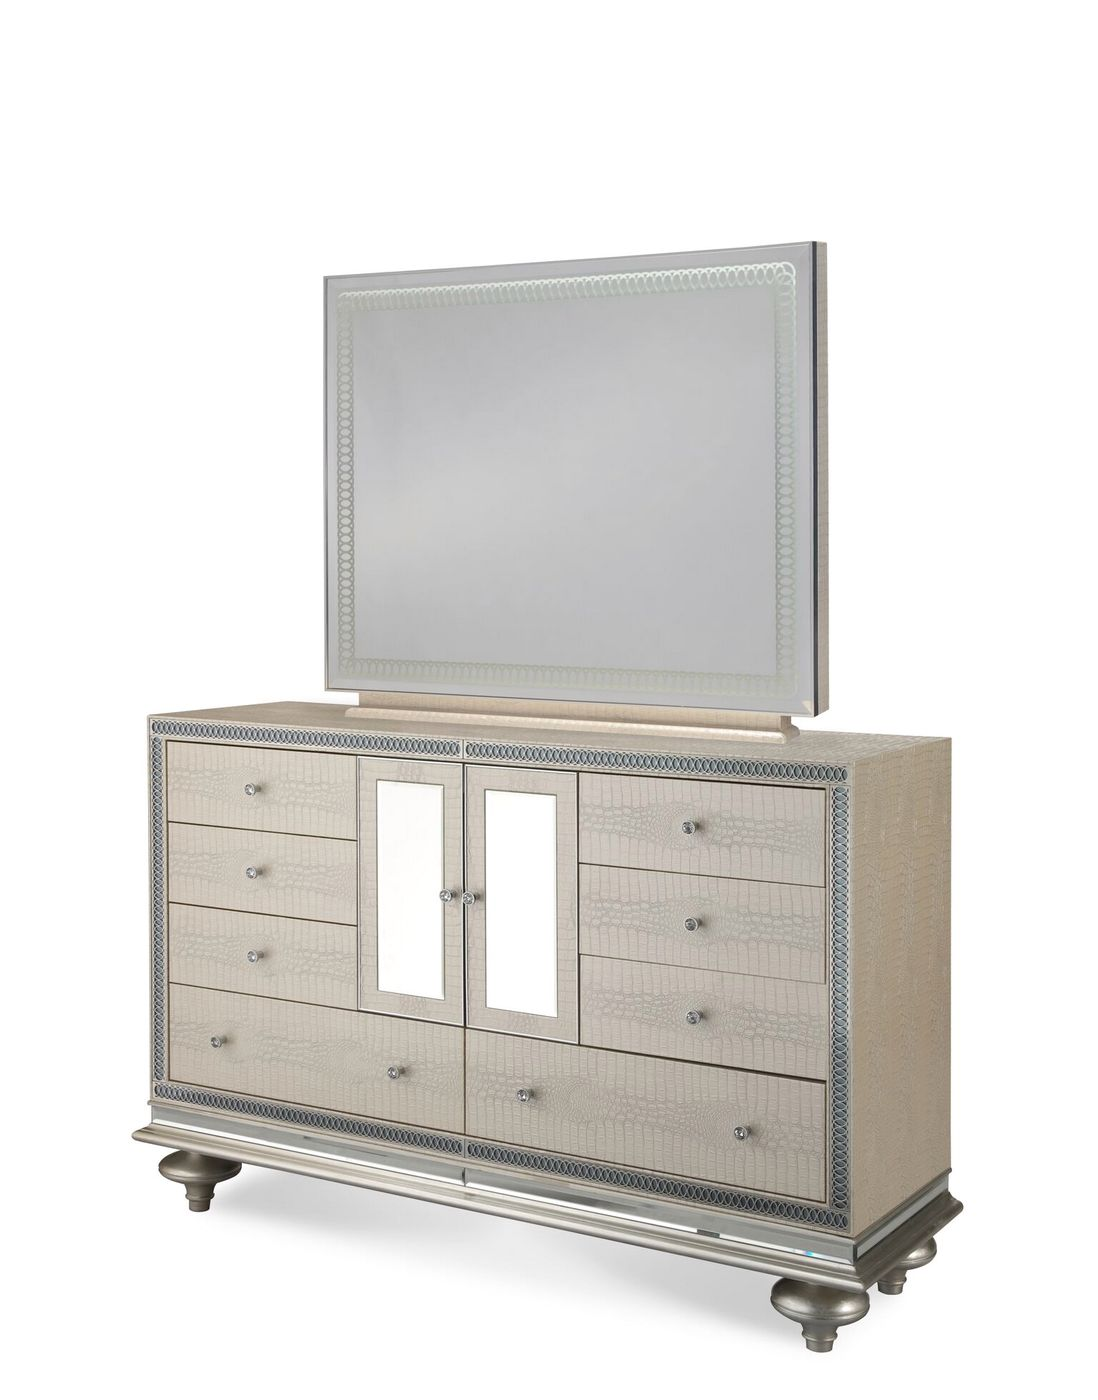 Aico Hollywood swank wing back beige leather with creamy-pearl finish